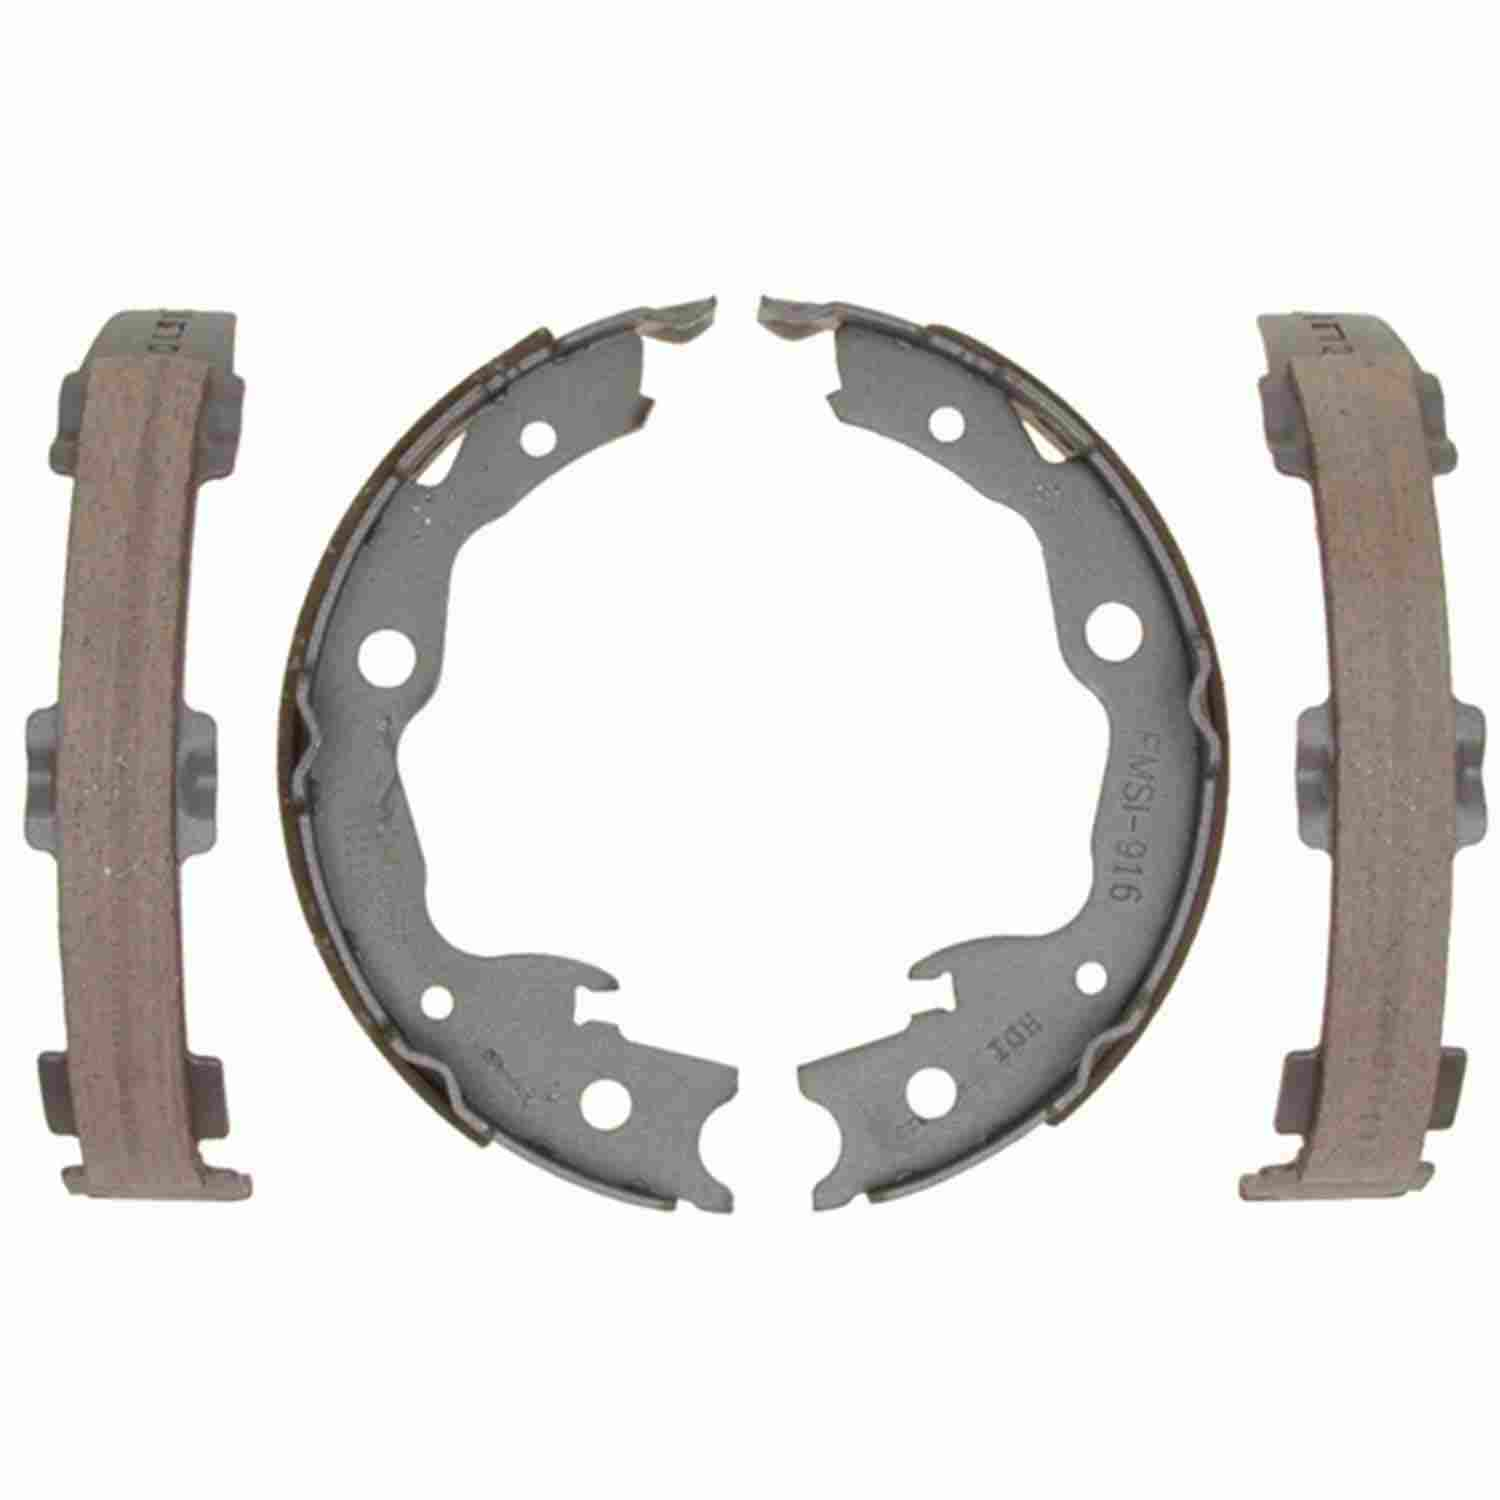 ACDELCO PROFESSIONAL BRAKES - Bonded Parking Brake Shoe (Rear) - ADU 17916B